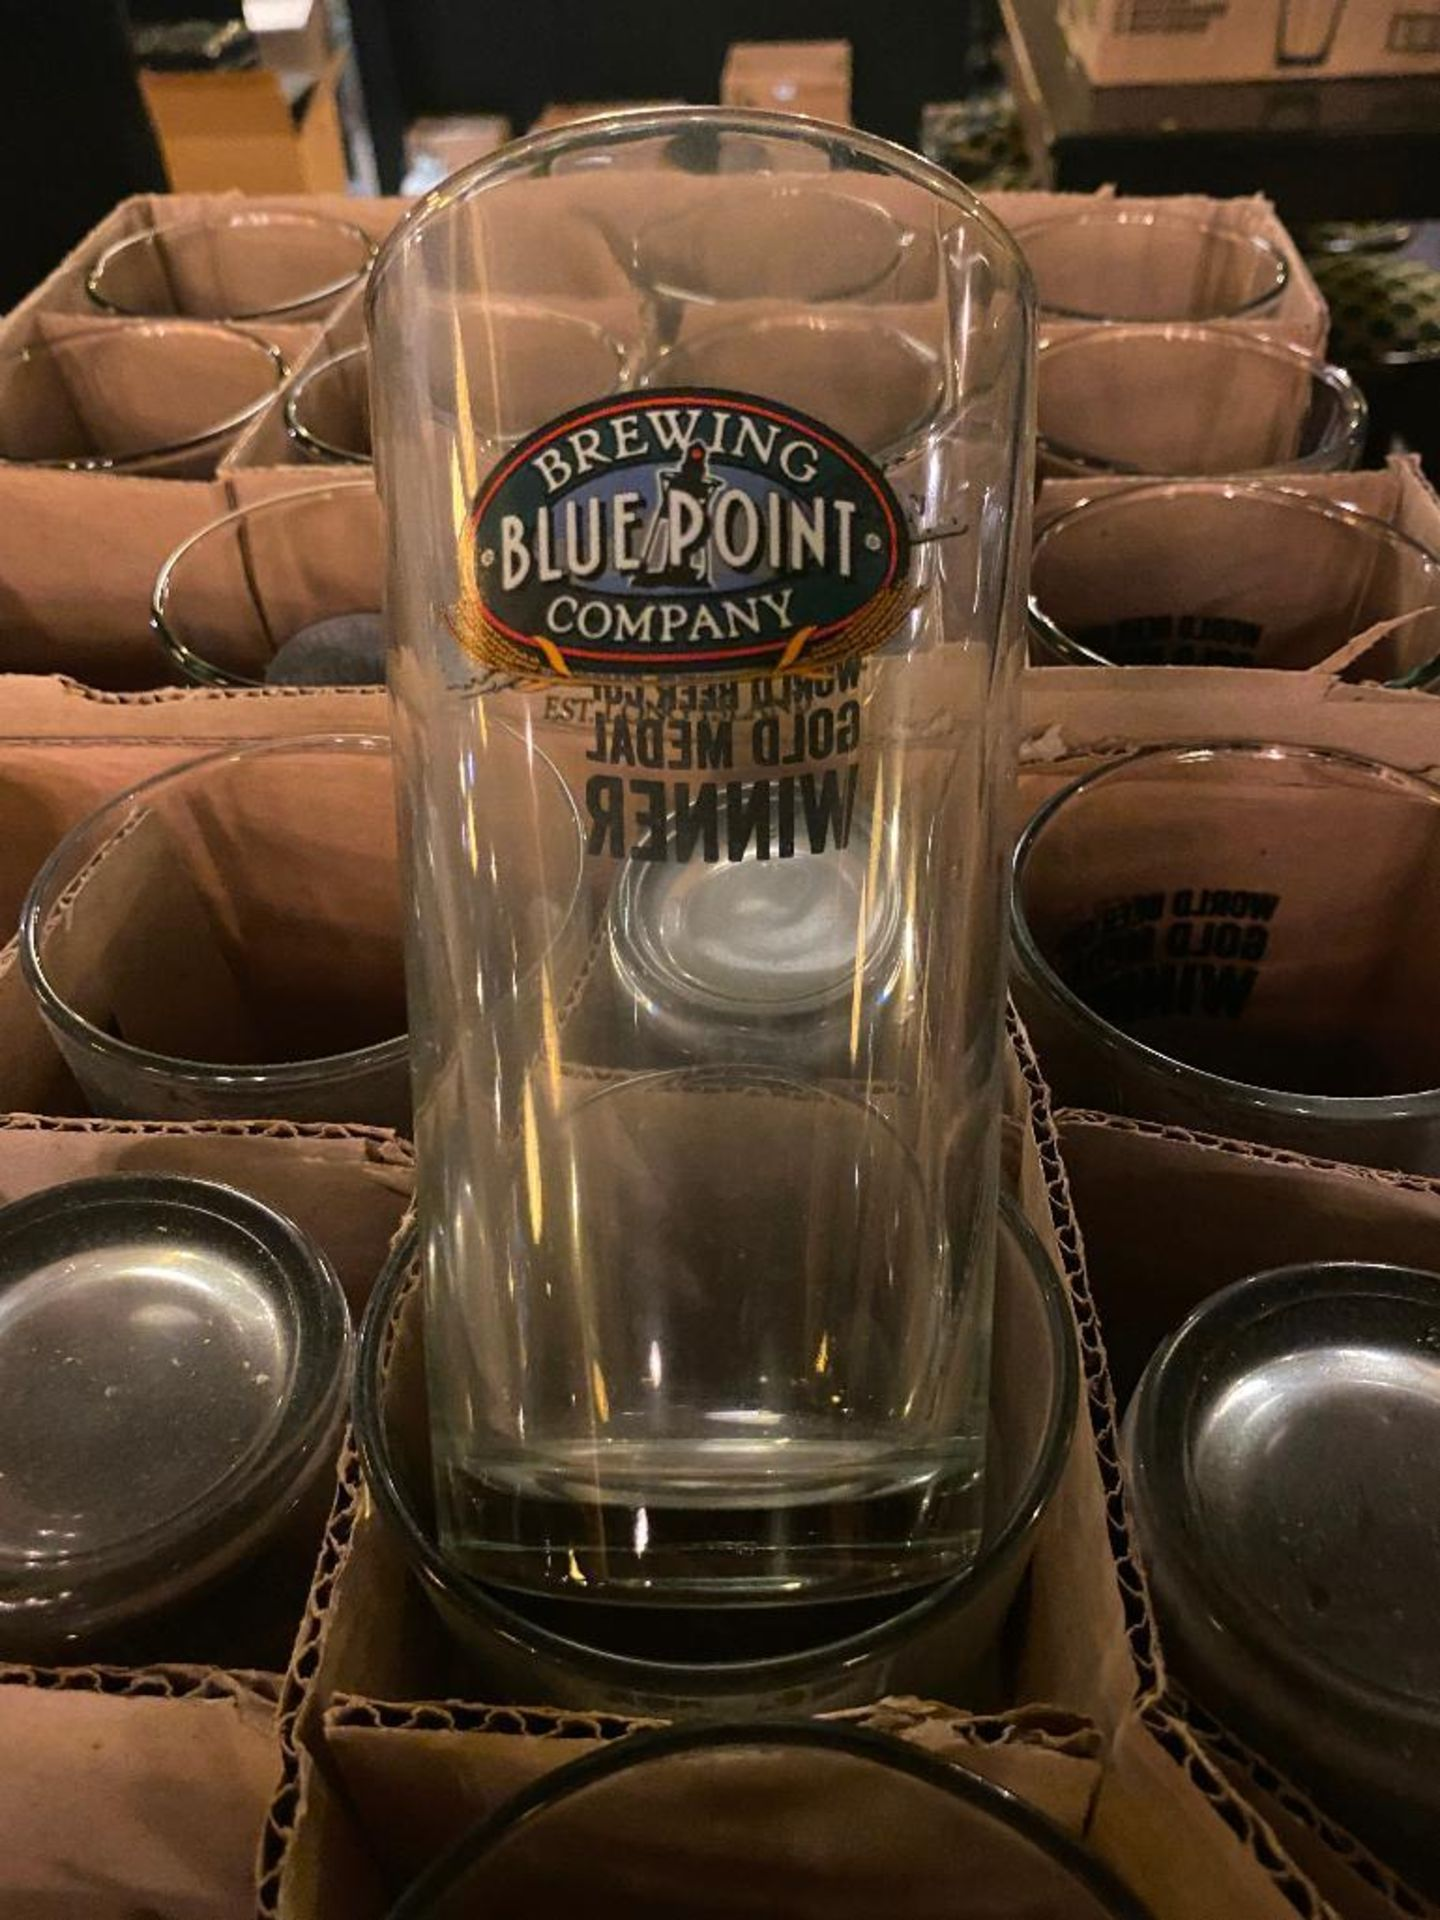 LOT OF (4) BOXES OF BLUE POINT BREWING GLASSES - Image 2 of 2